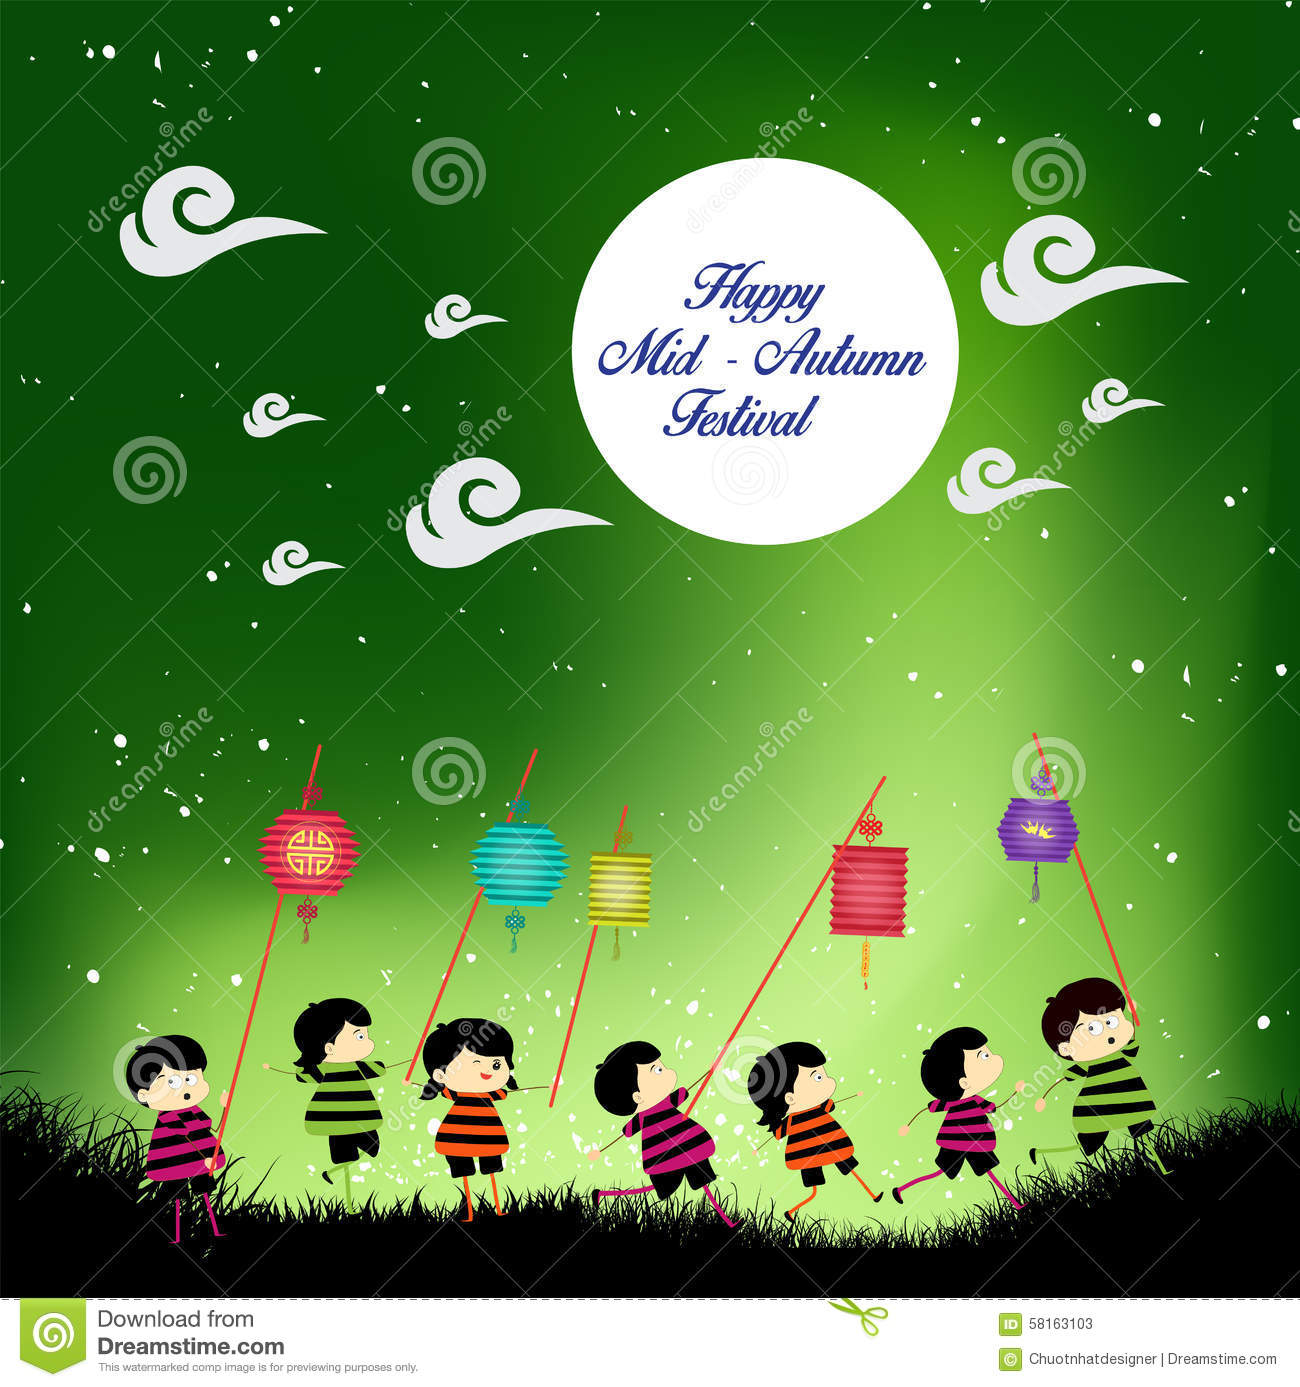 Mid autumn festival background with kids playing lanterns stock royalty free vector download mid autumn toneelgroepblik Image collections